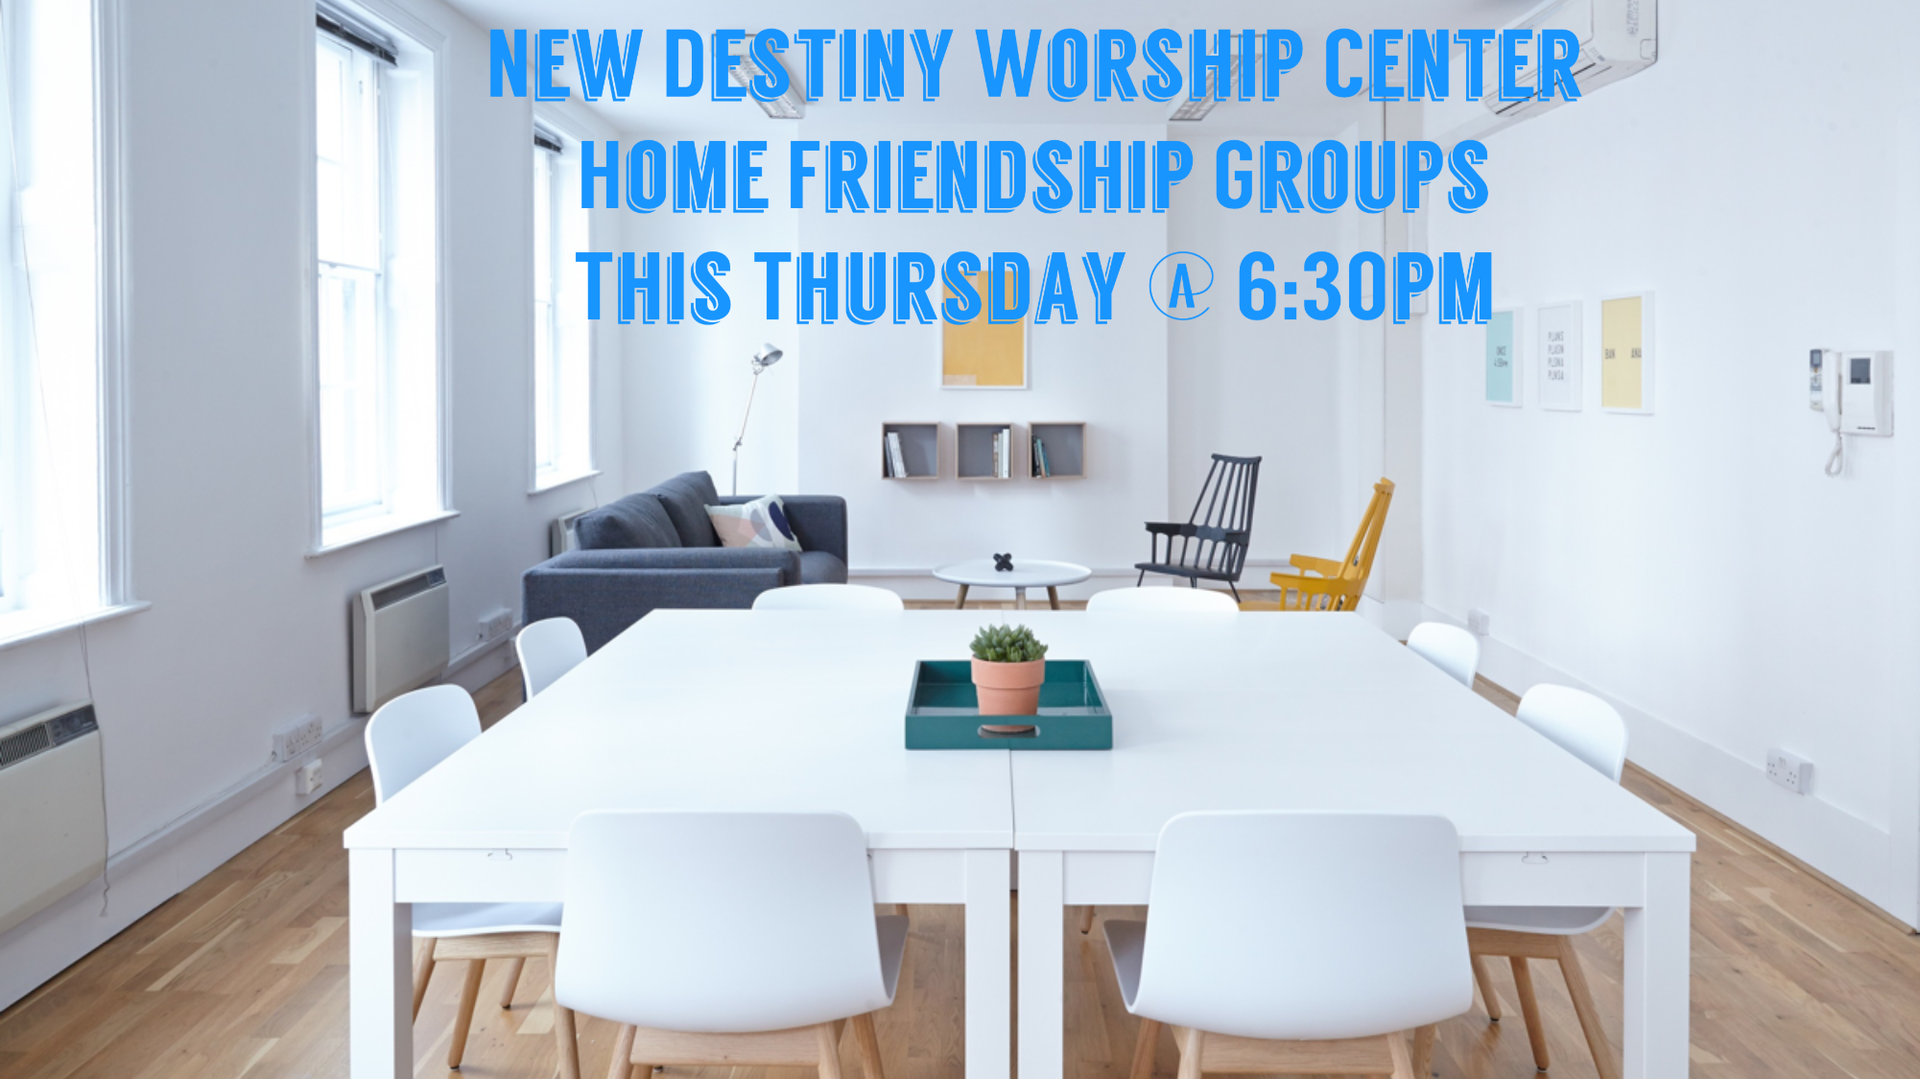 New Destiny Worship Center